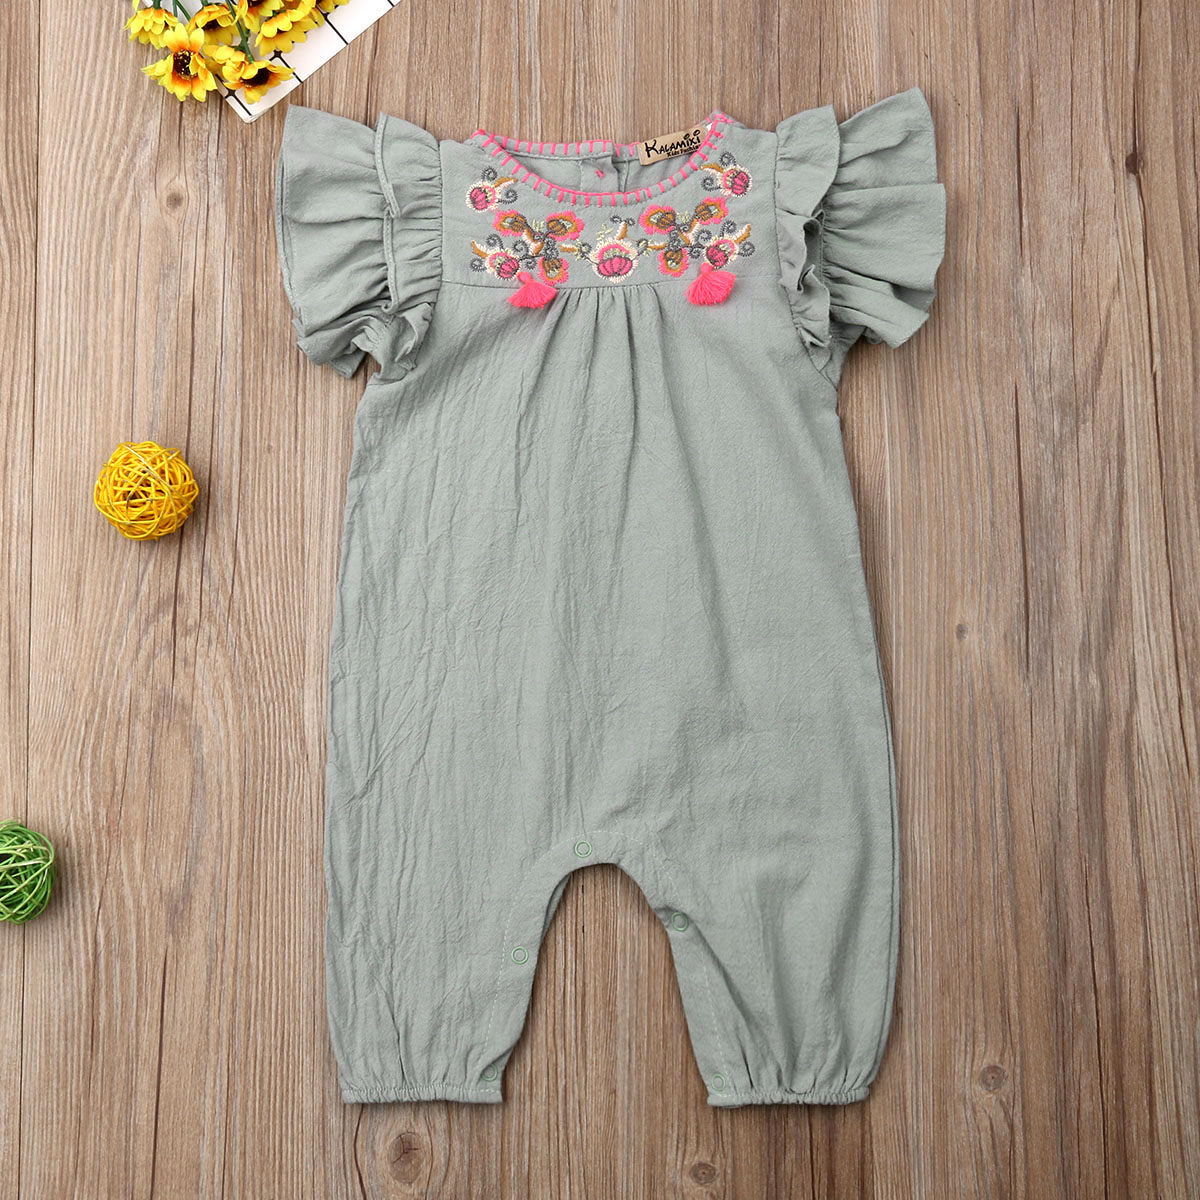 Emmababy Summer Newest Fashion Newborn Baby Girl Clothes Solid Color Fly Sleeve Ruffle Flower Romper Jumpsuit Outfit Sunsuit